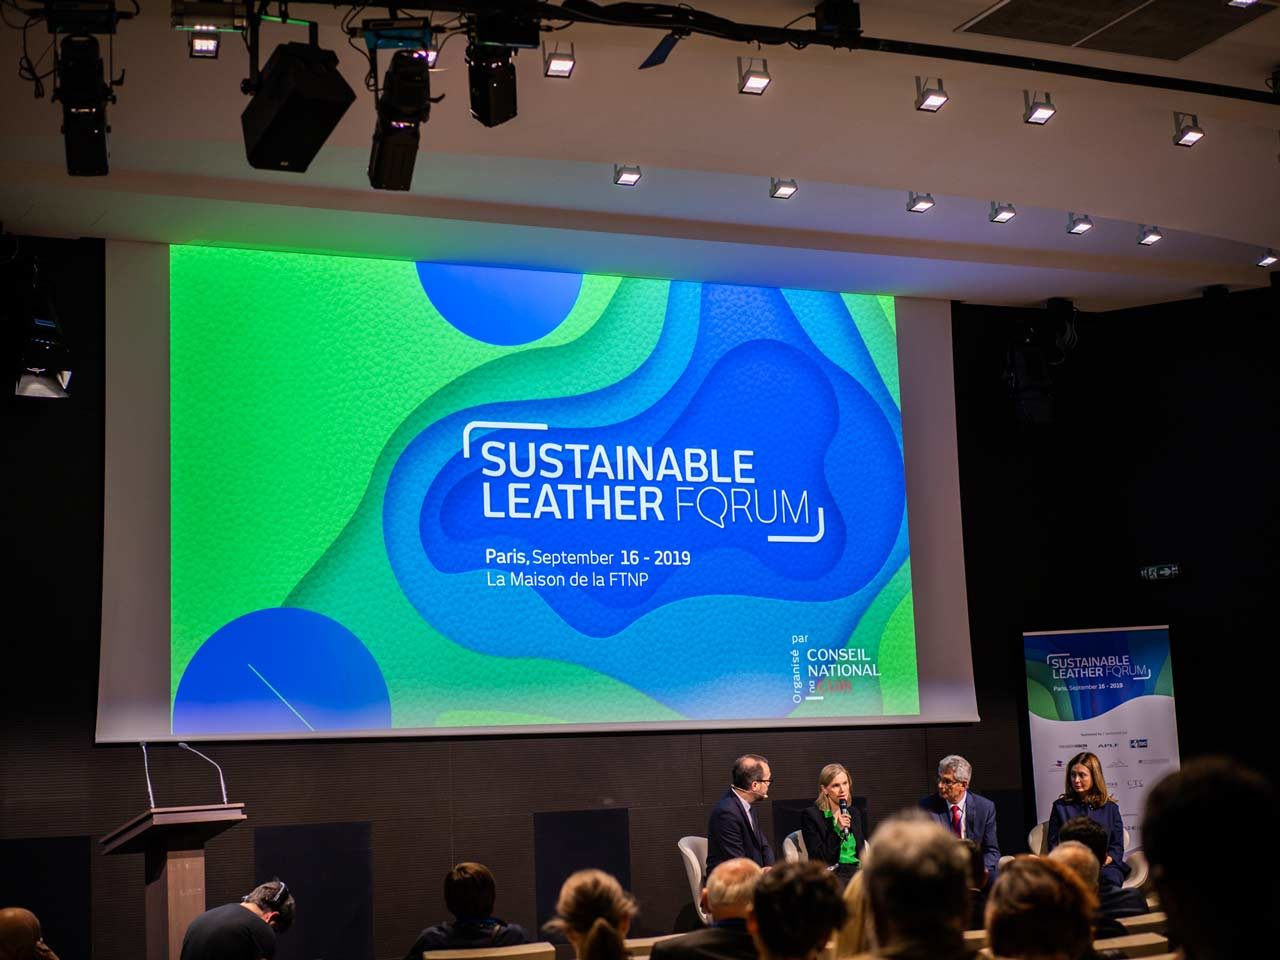 Sustainable Leather Forum